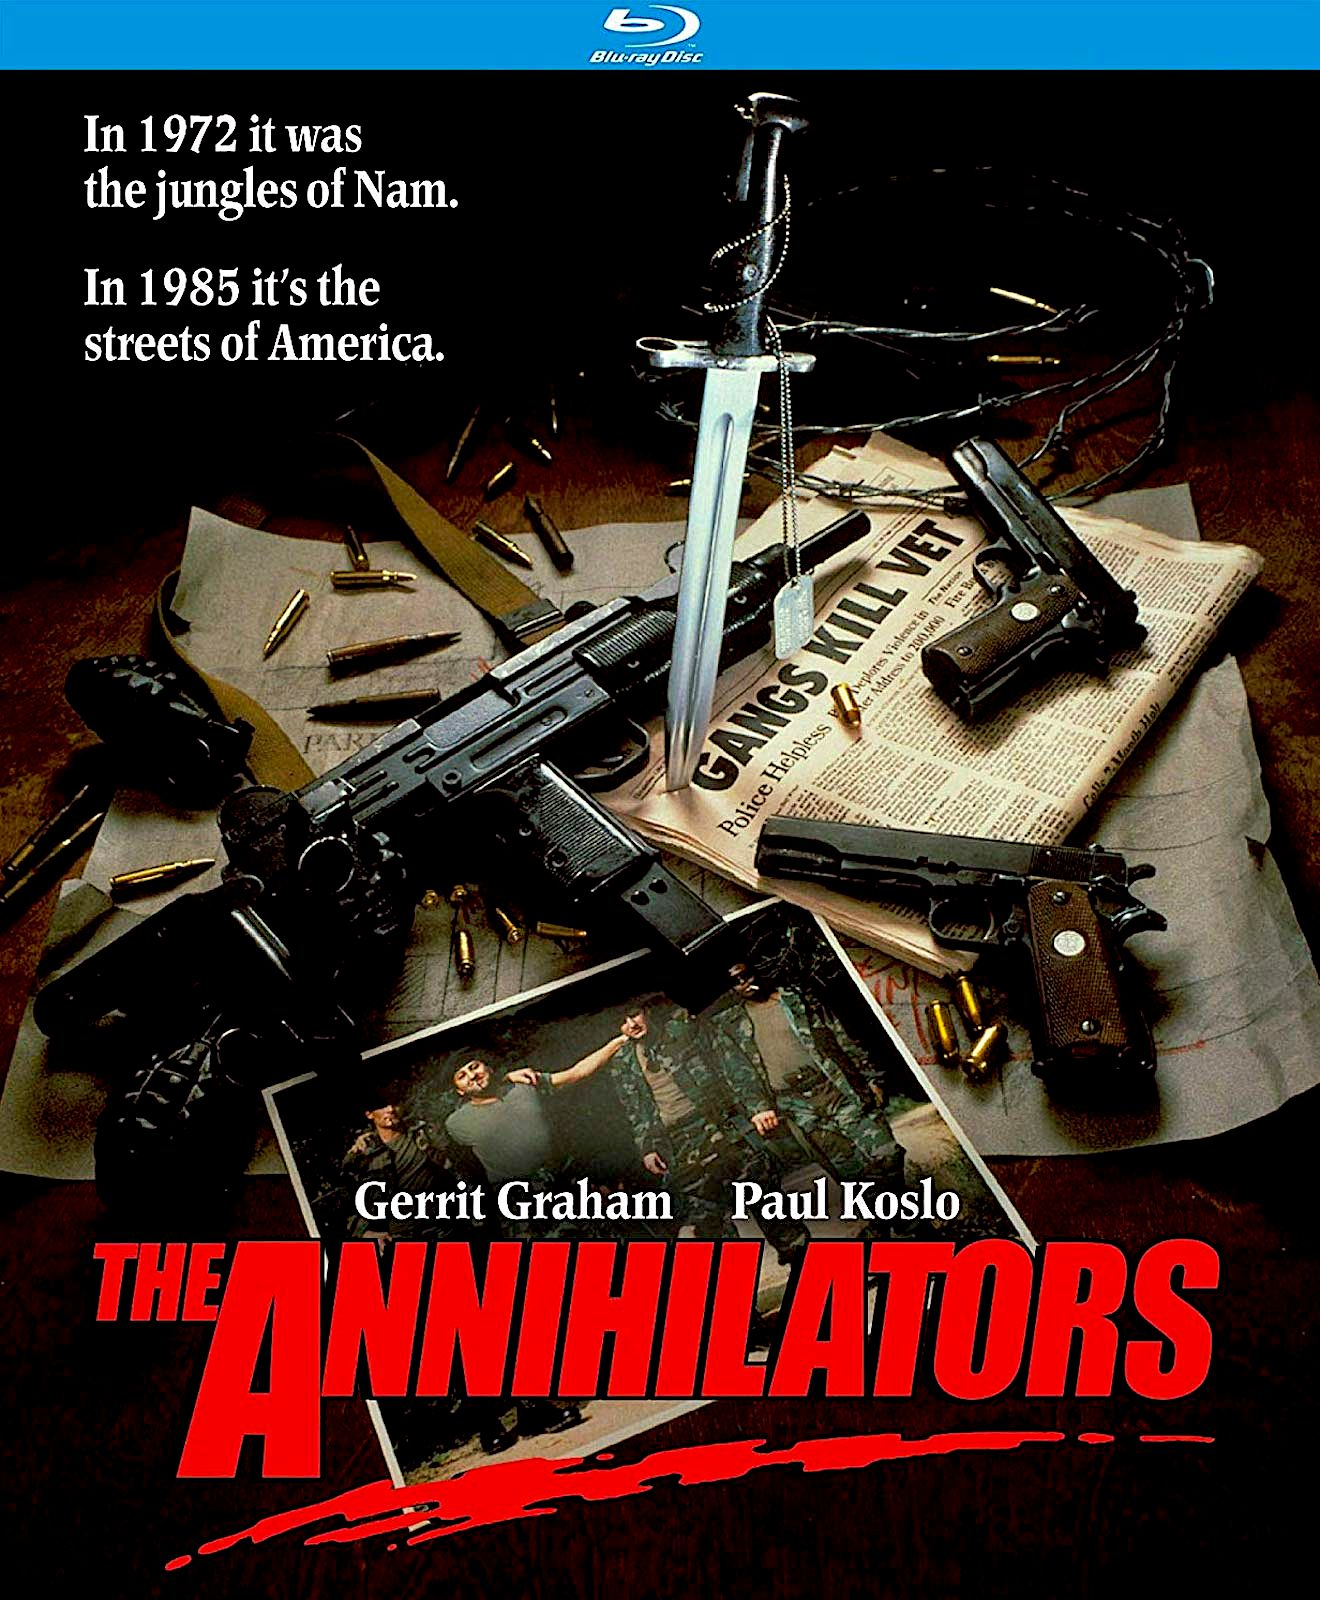 THE ANNIHILATORS REVERSE COVER BLU-RAY (KINO LORBER) | RECENT AND